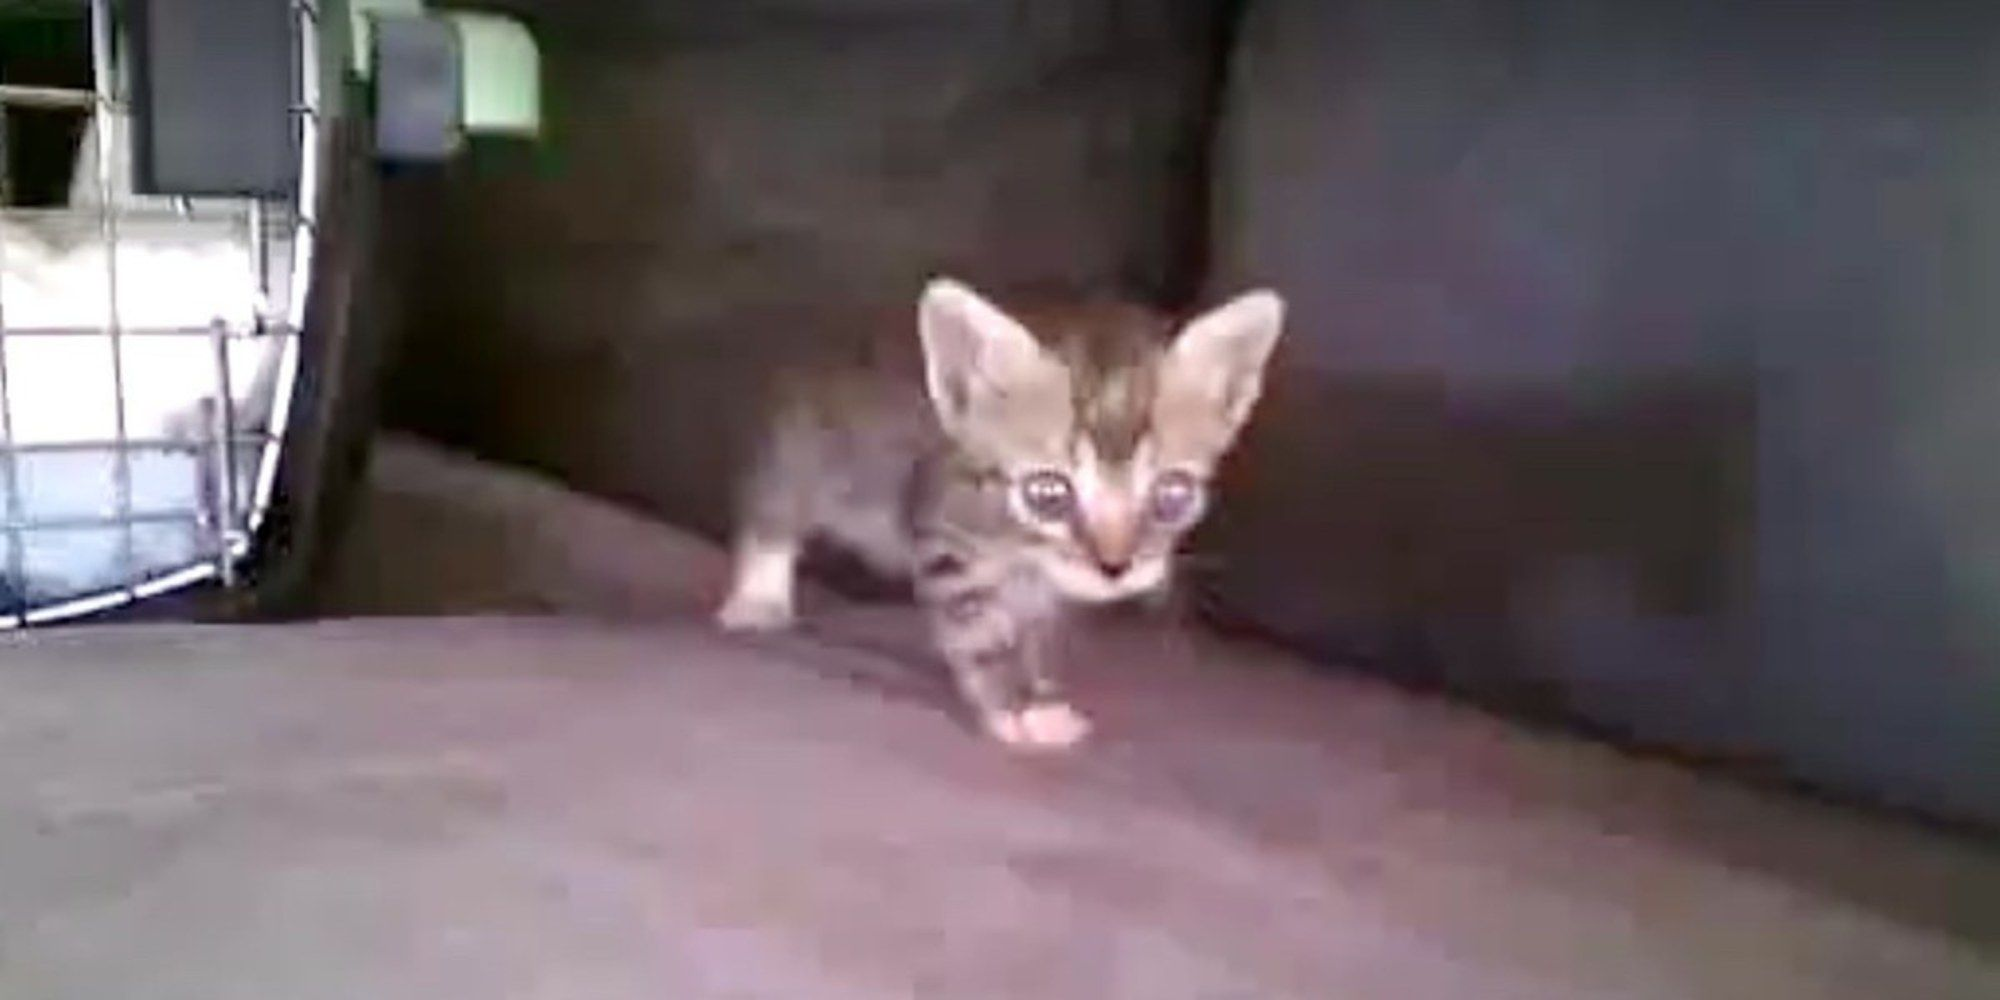 A Man Saved A Tiny Kitten From Drowning In A Sewer While Others Decided To Walk Away He Rushed The Kitten To G Animal Rescue Stories Kitten Cute Animal Photos